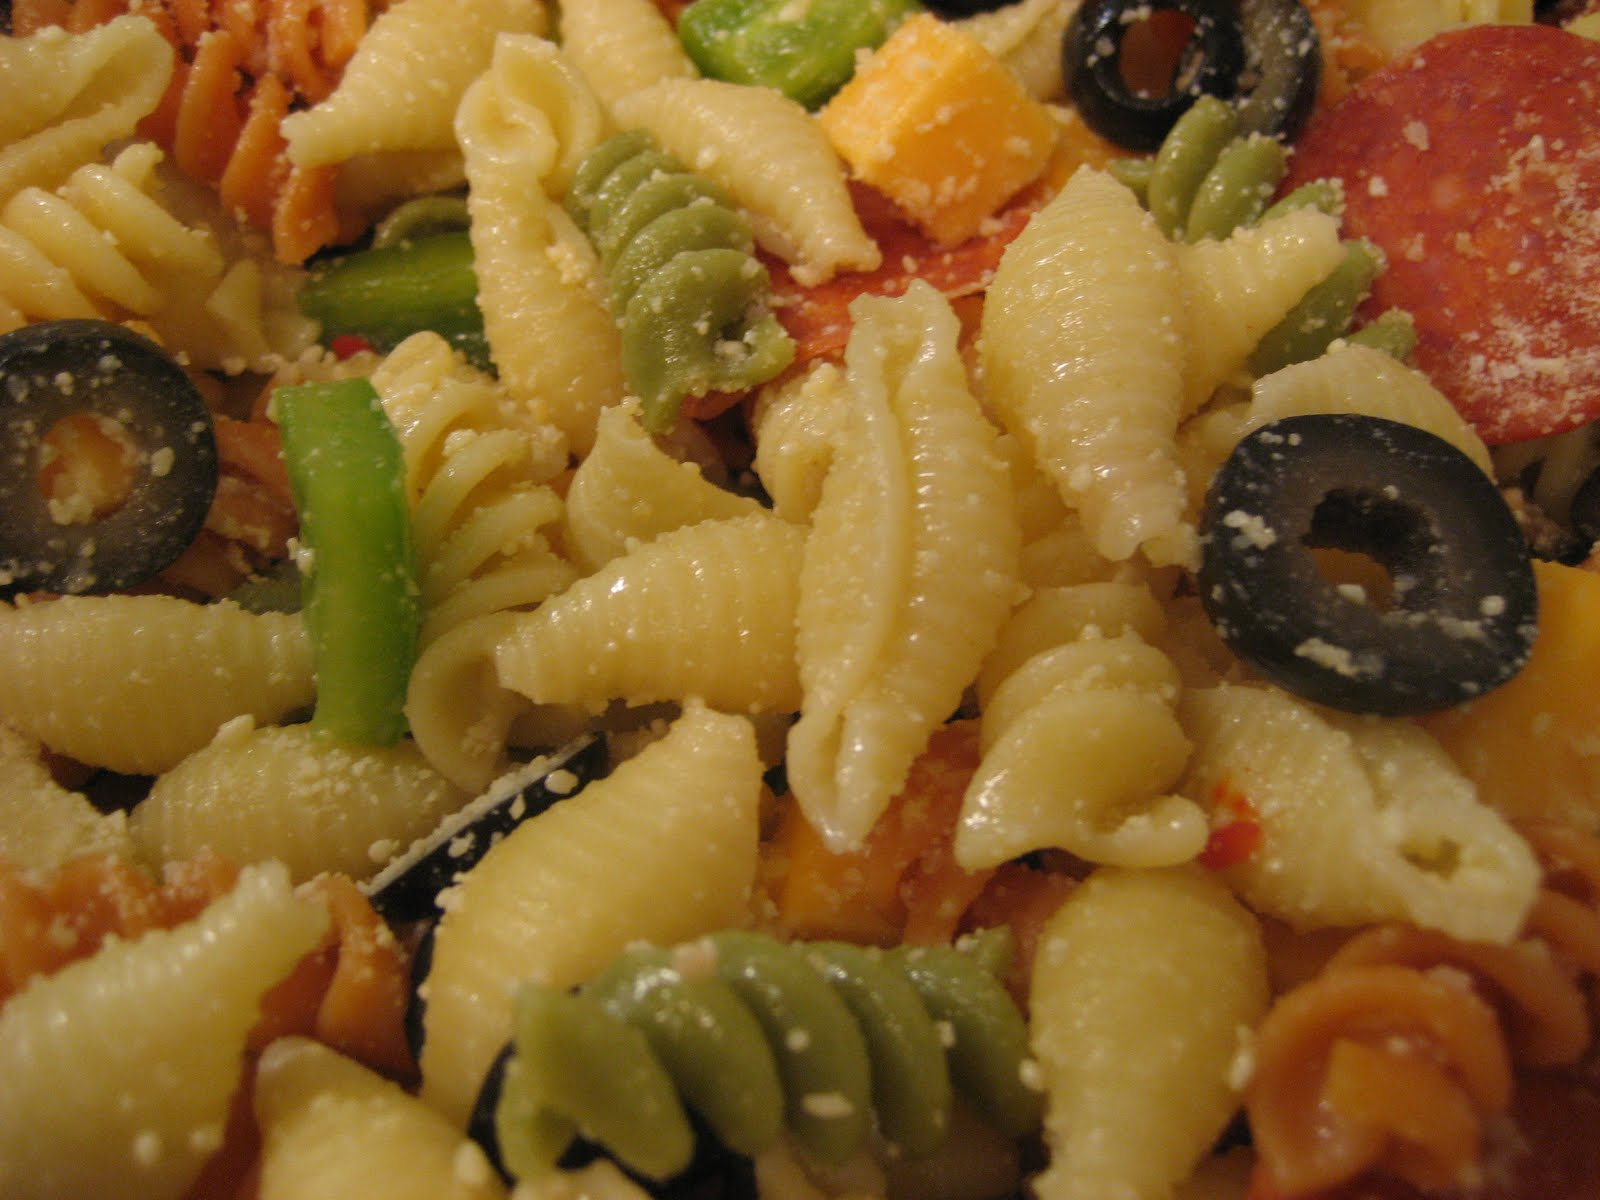 zesty italian Easy zesty italian pasta salad that is the perfect side dish to any meal customize this tri-colored pasta salad with your favorite veggies for a unique flavor.